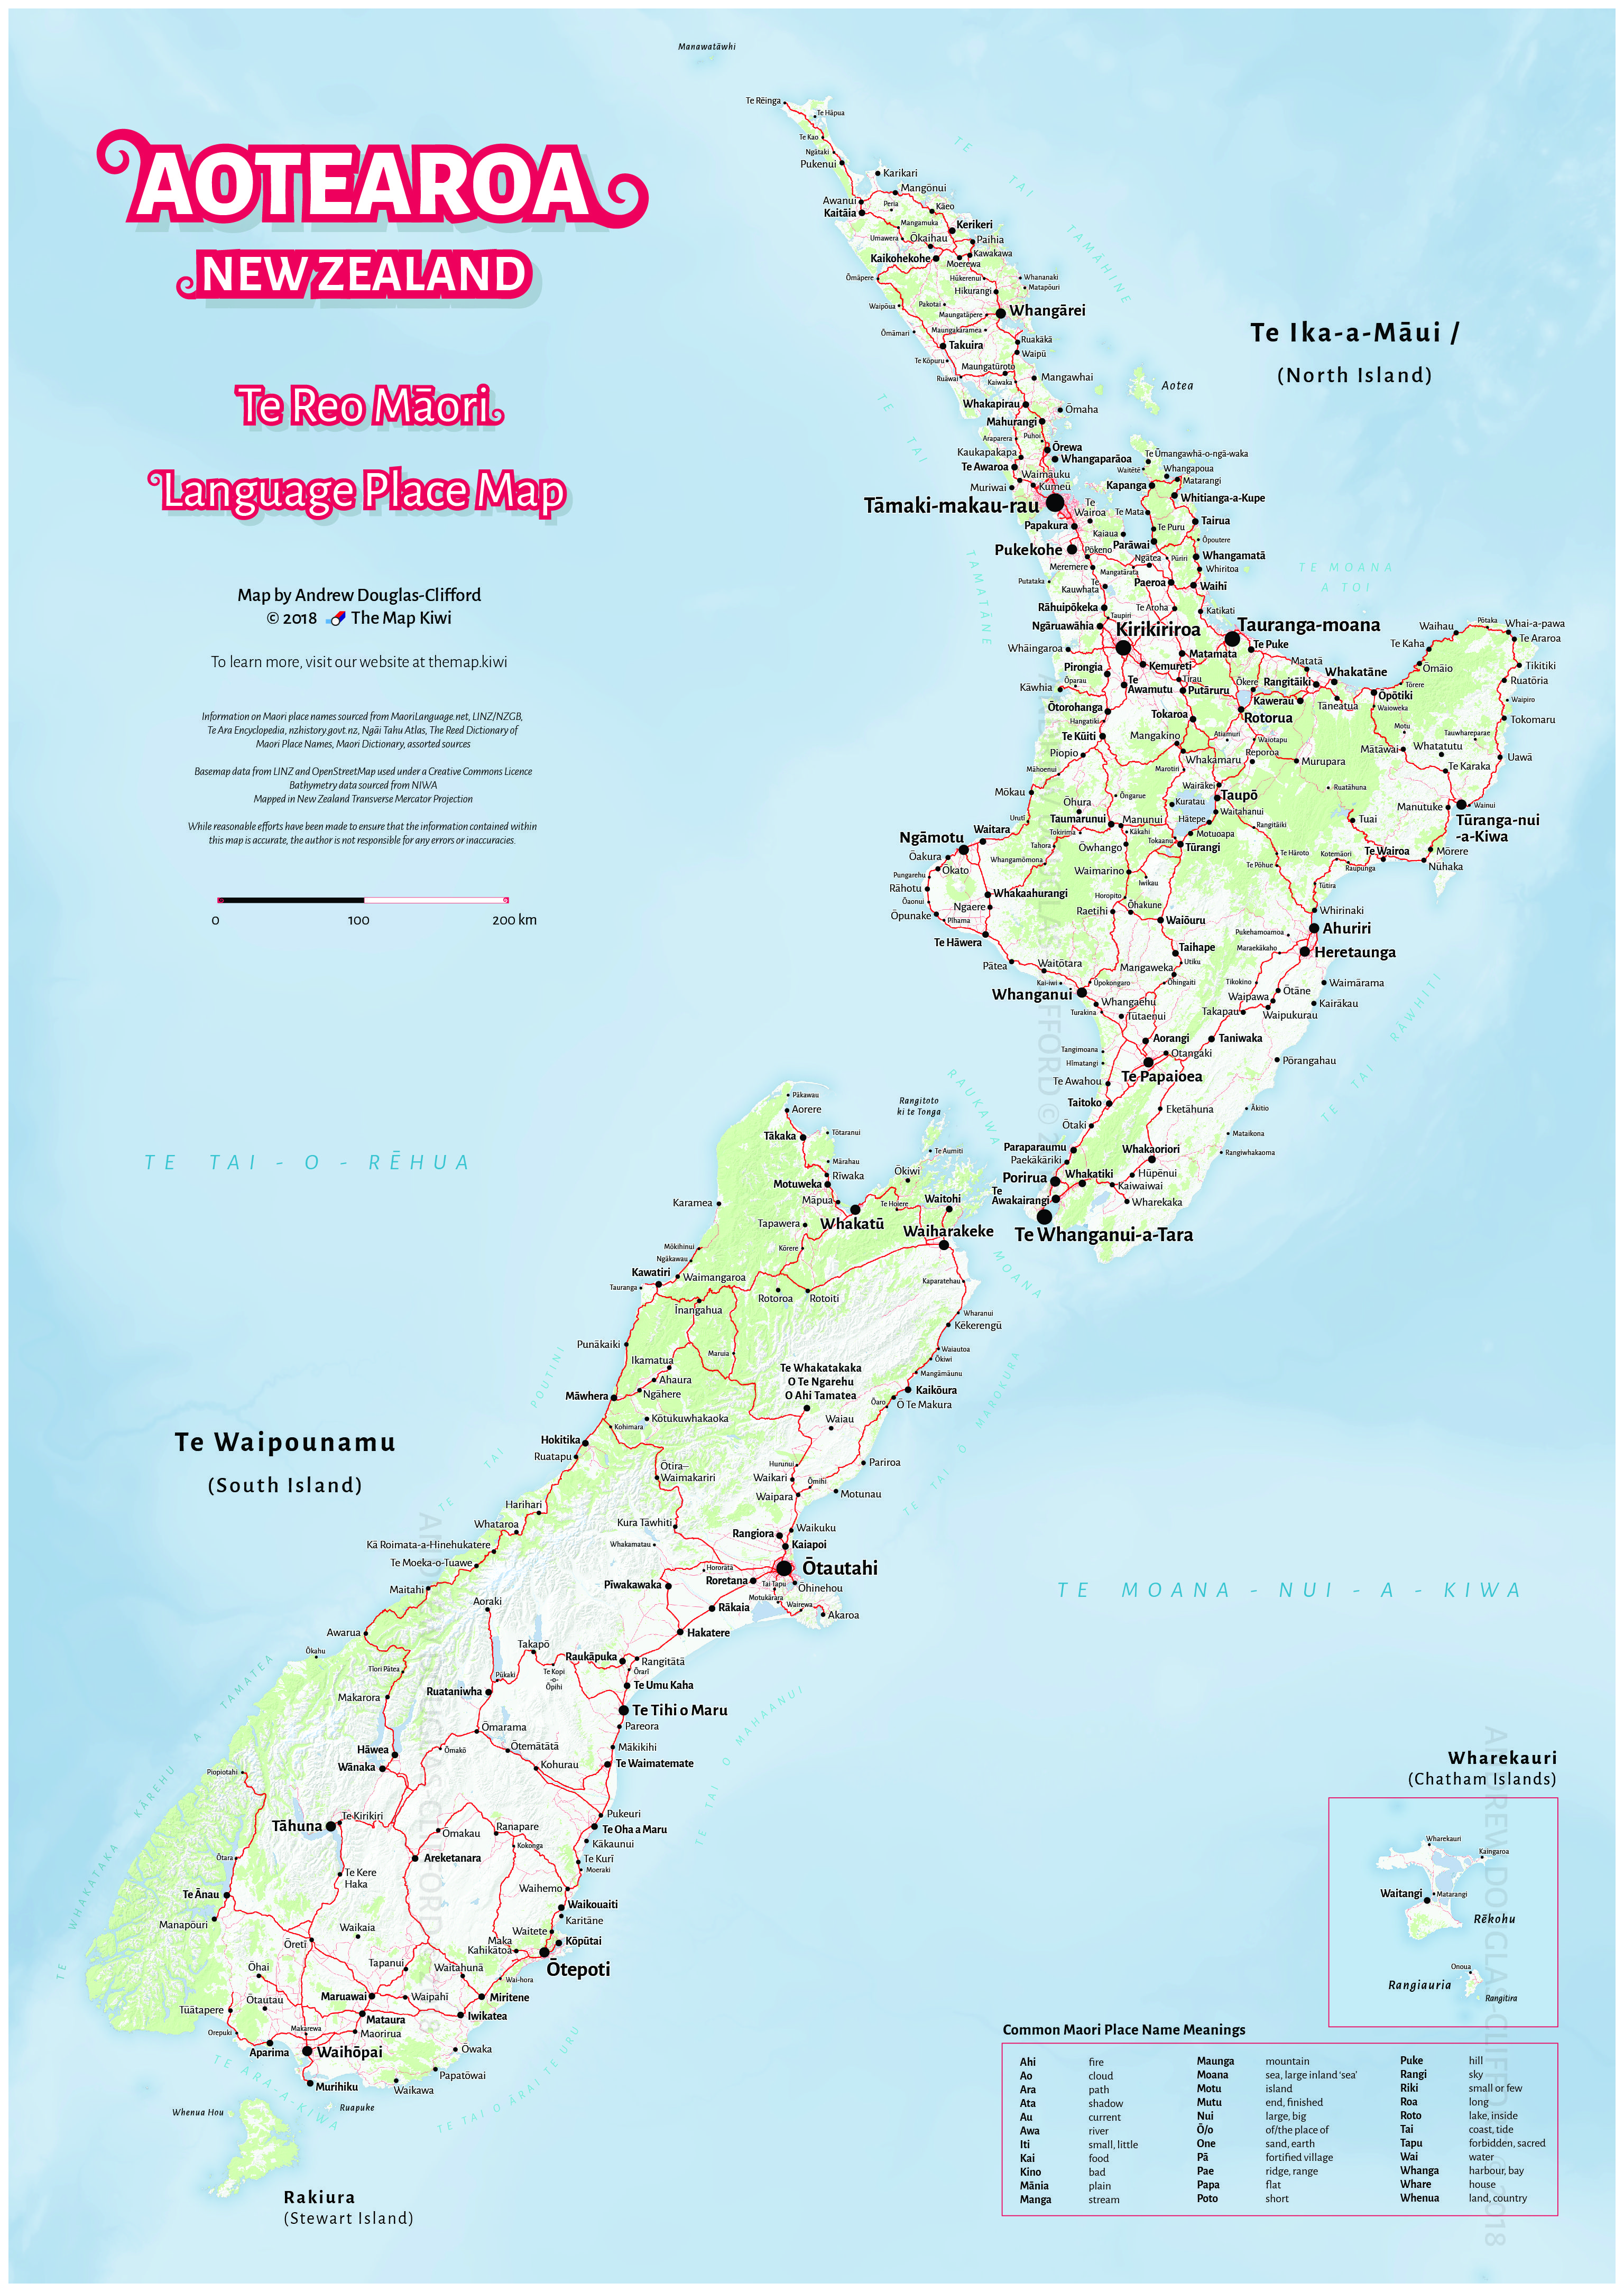 Te Reo Māori Map of Aotearoa/New Zealand | The old site we are